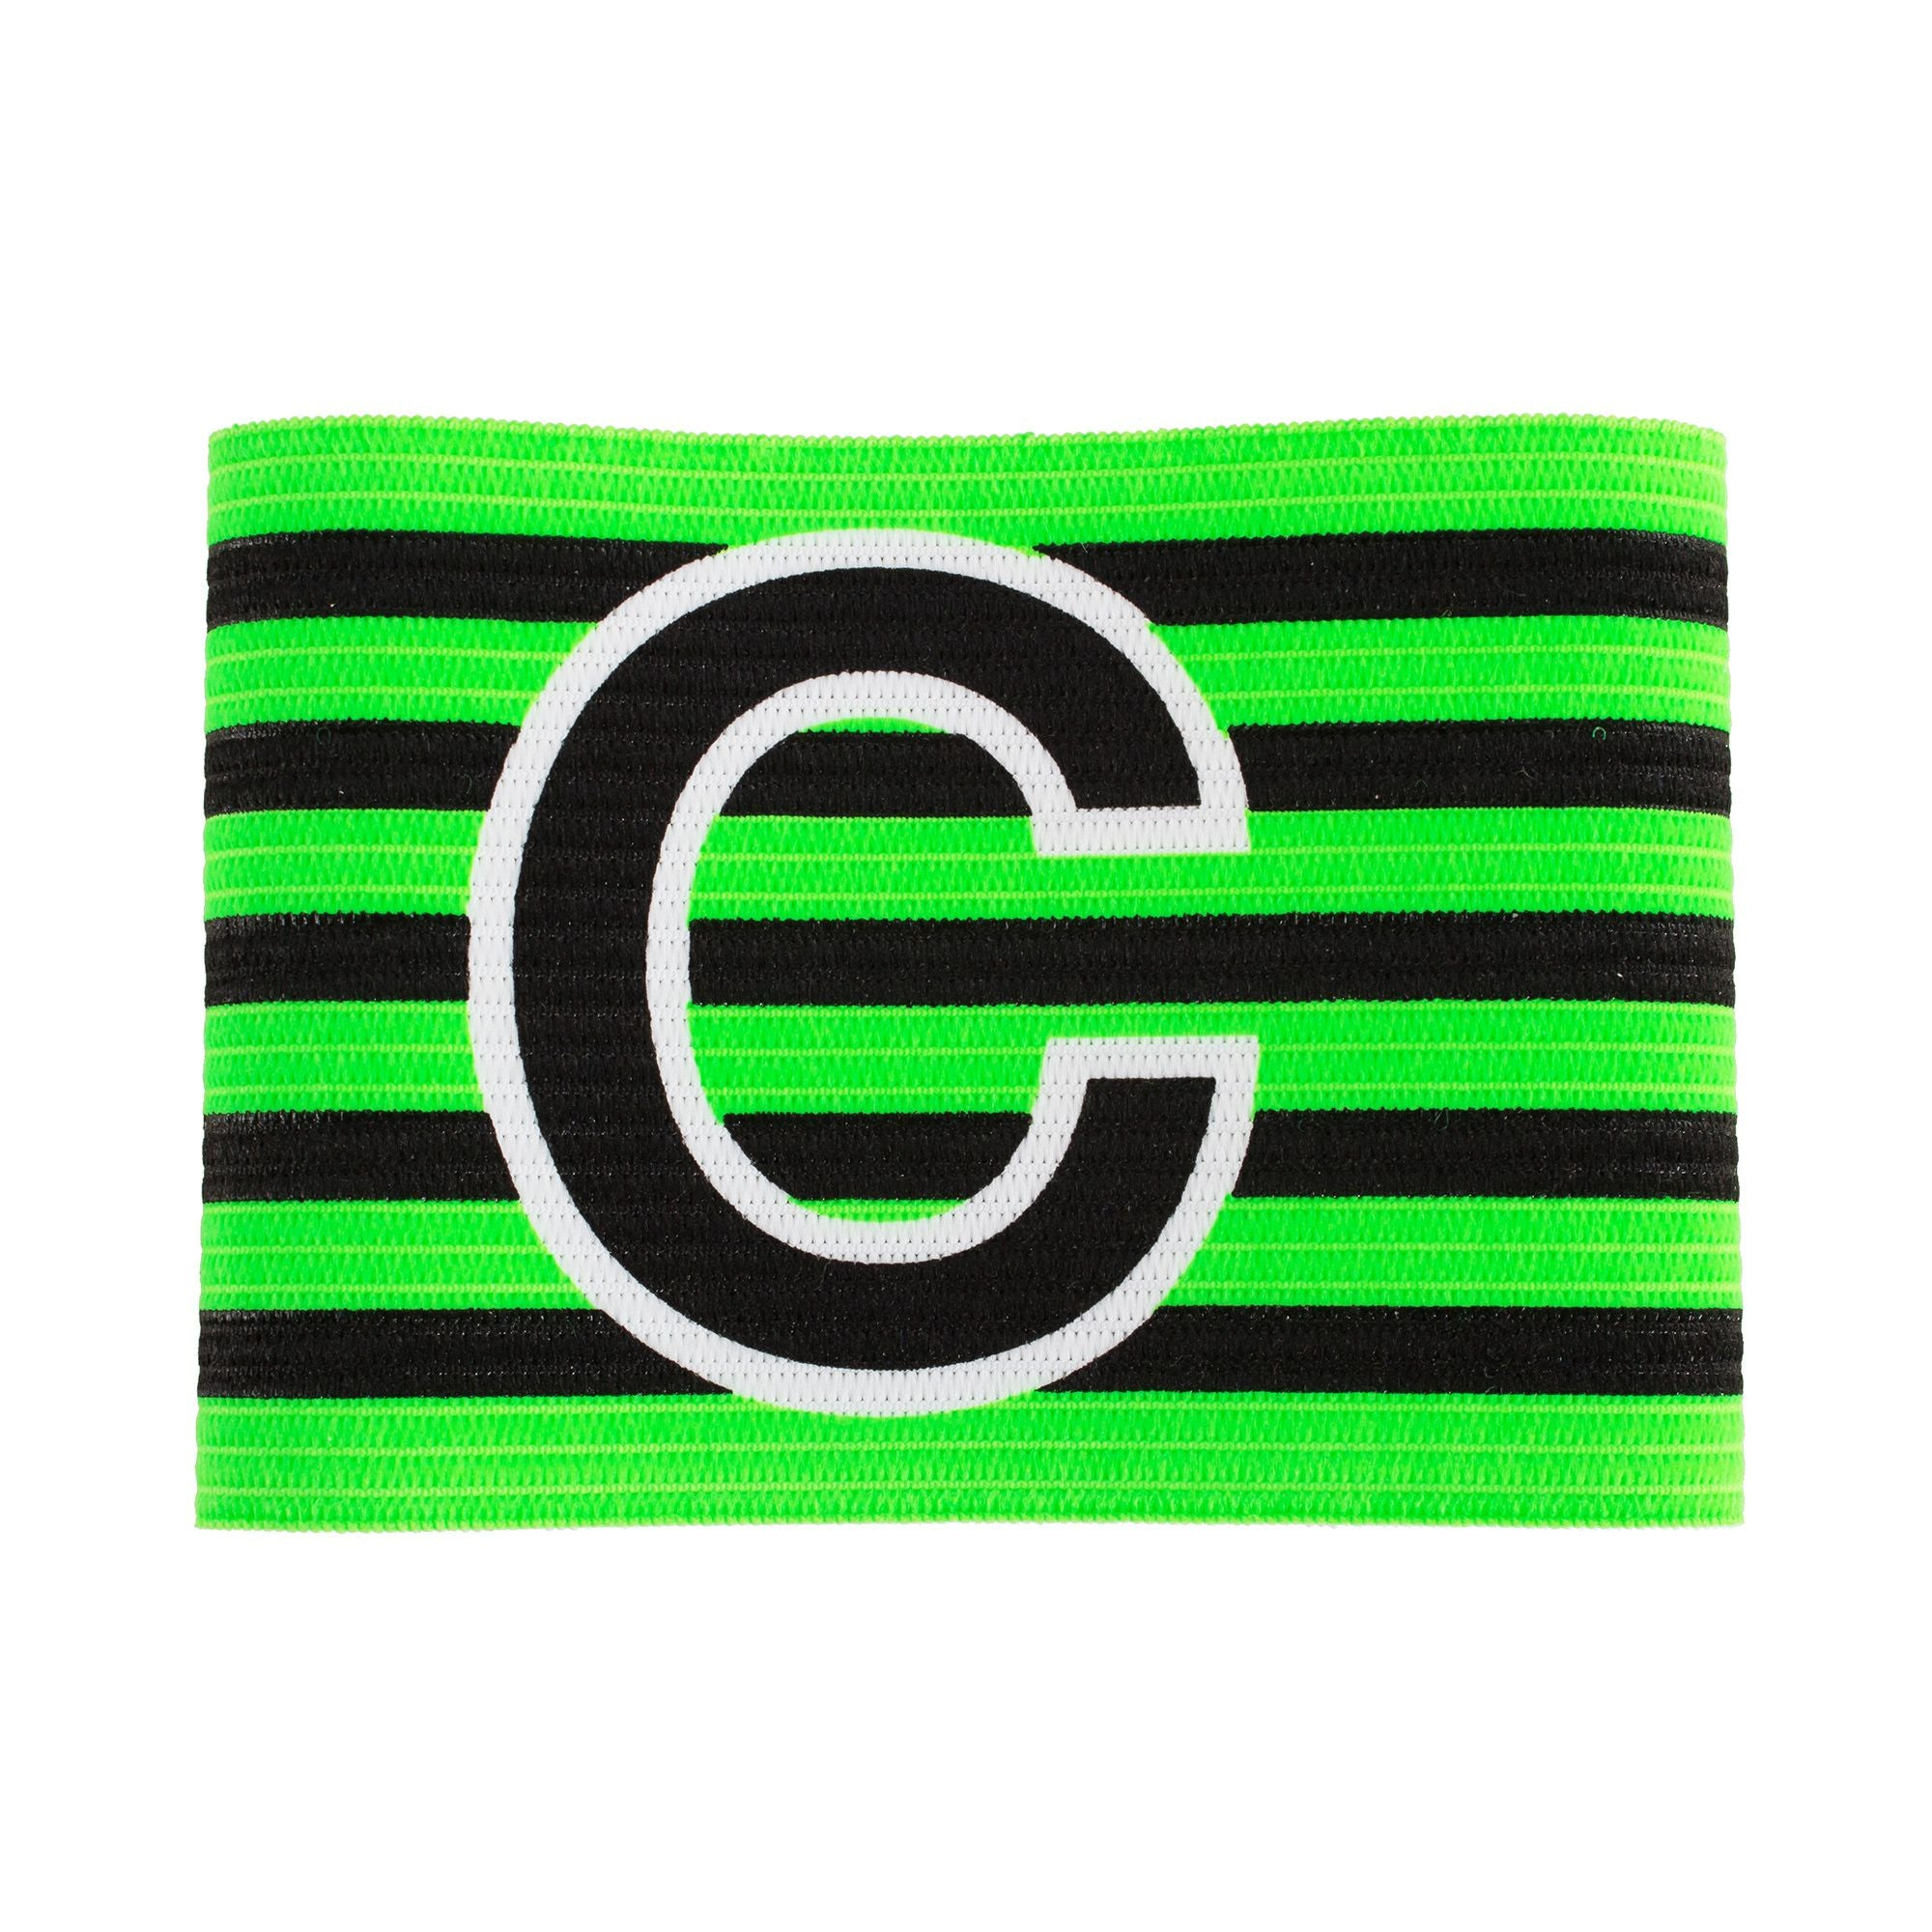 Green and black horizontal striped captains armband with large black C with white contour outline